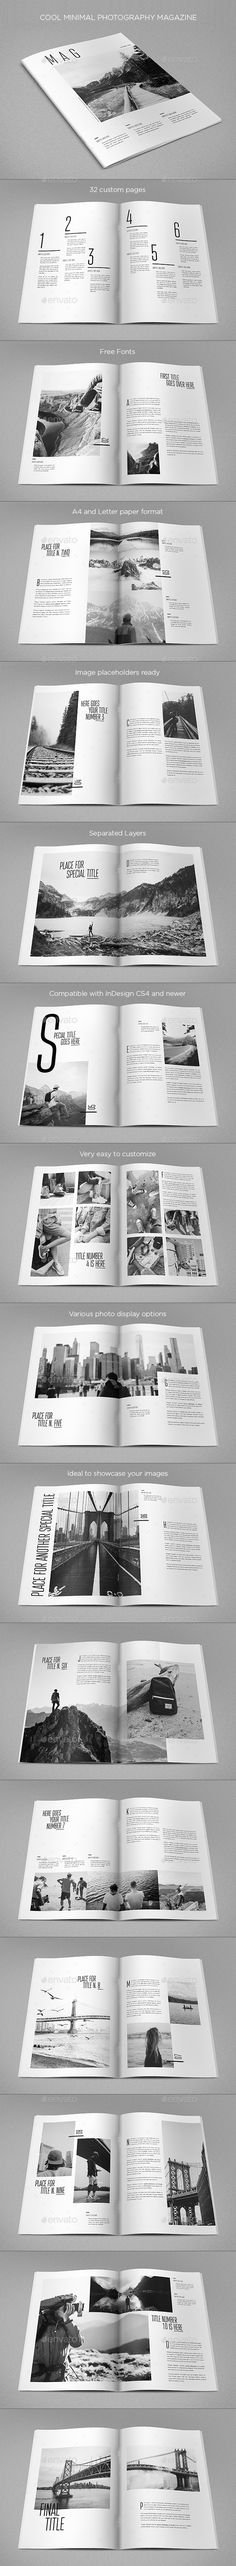 Cool Minimal Photography Magazine - #Magazines Print #Templates Download here: https://graphicriver.net/item/cool-minimal-photography-magazine/19579094?ref=alena994